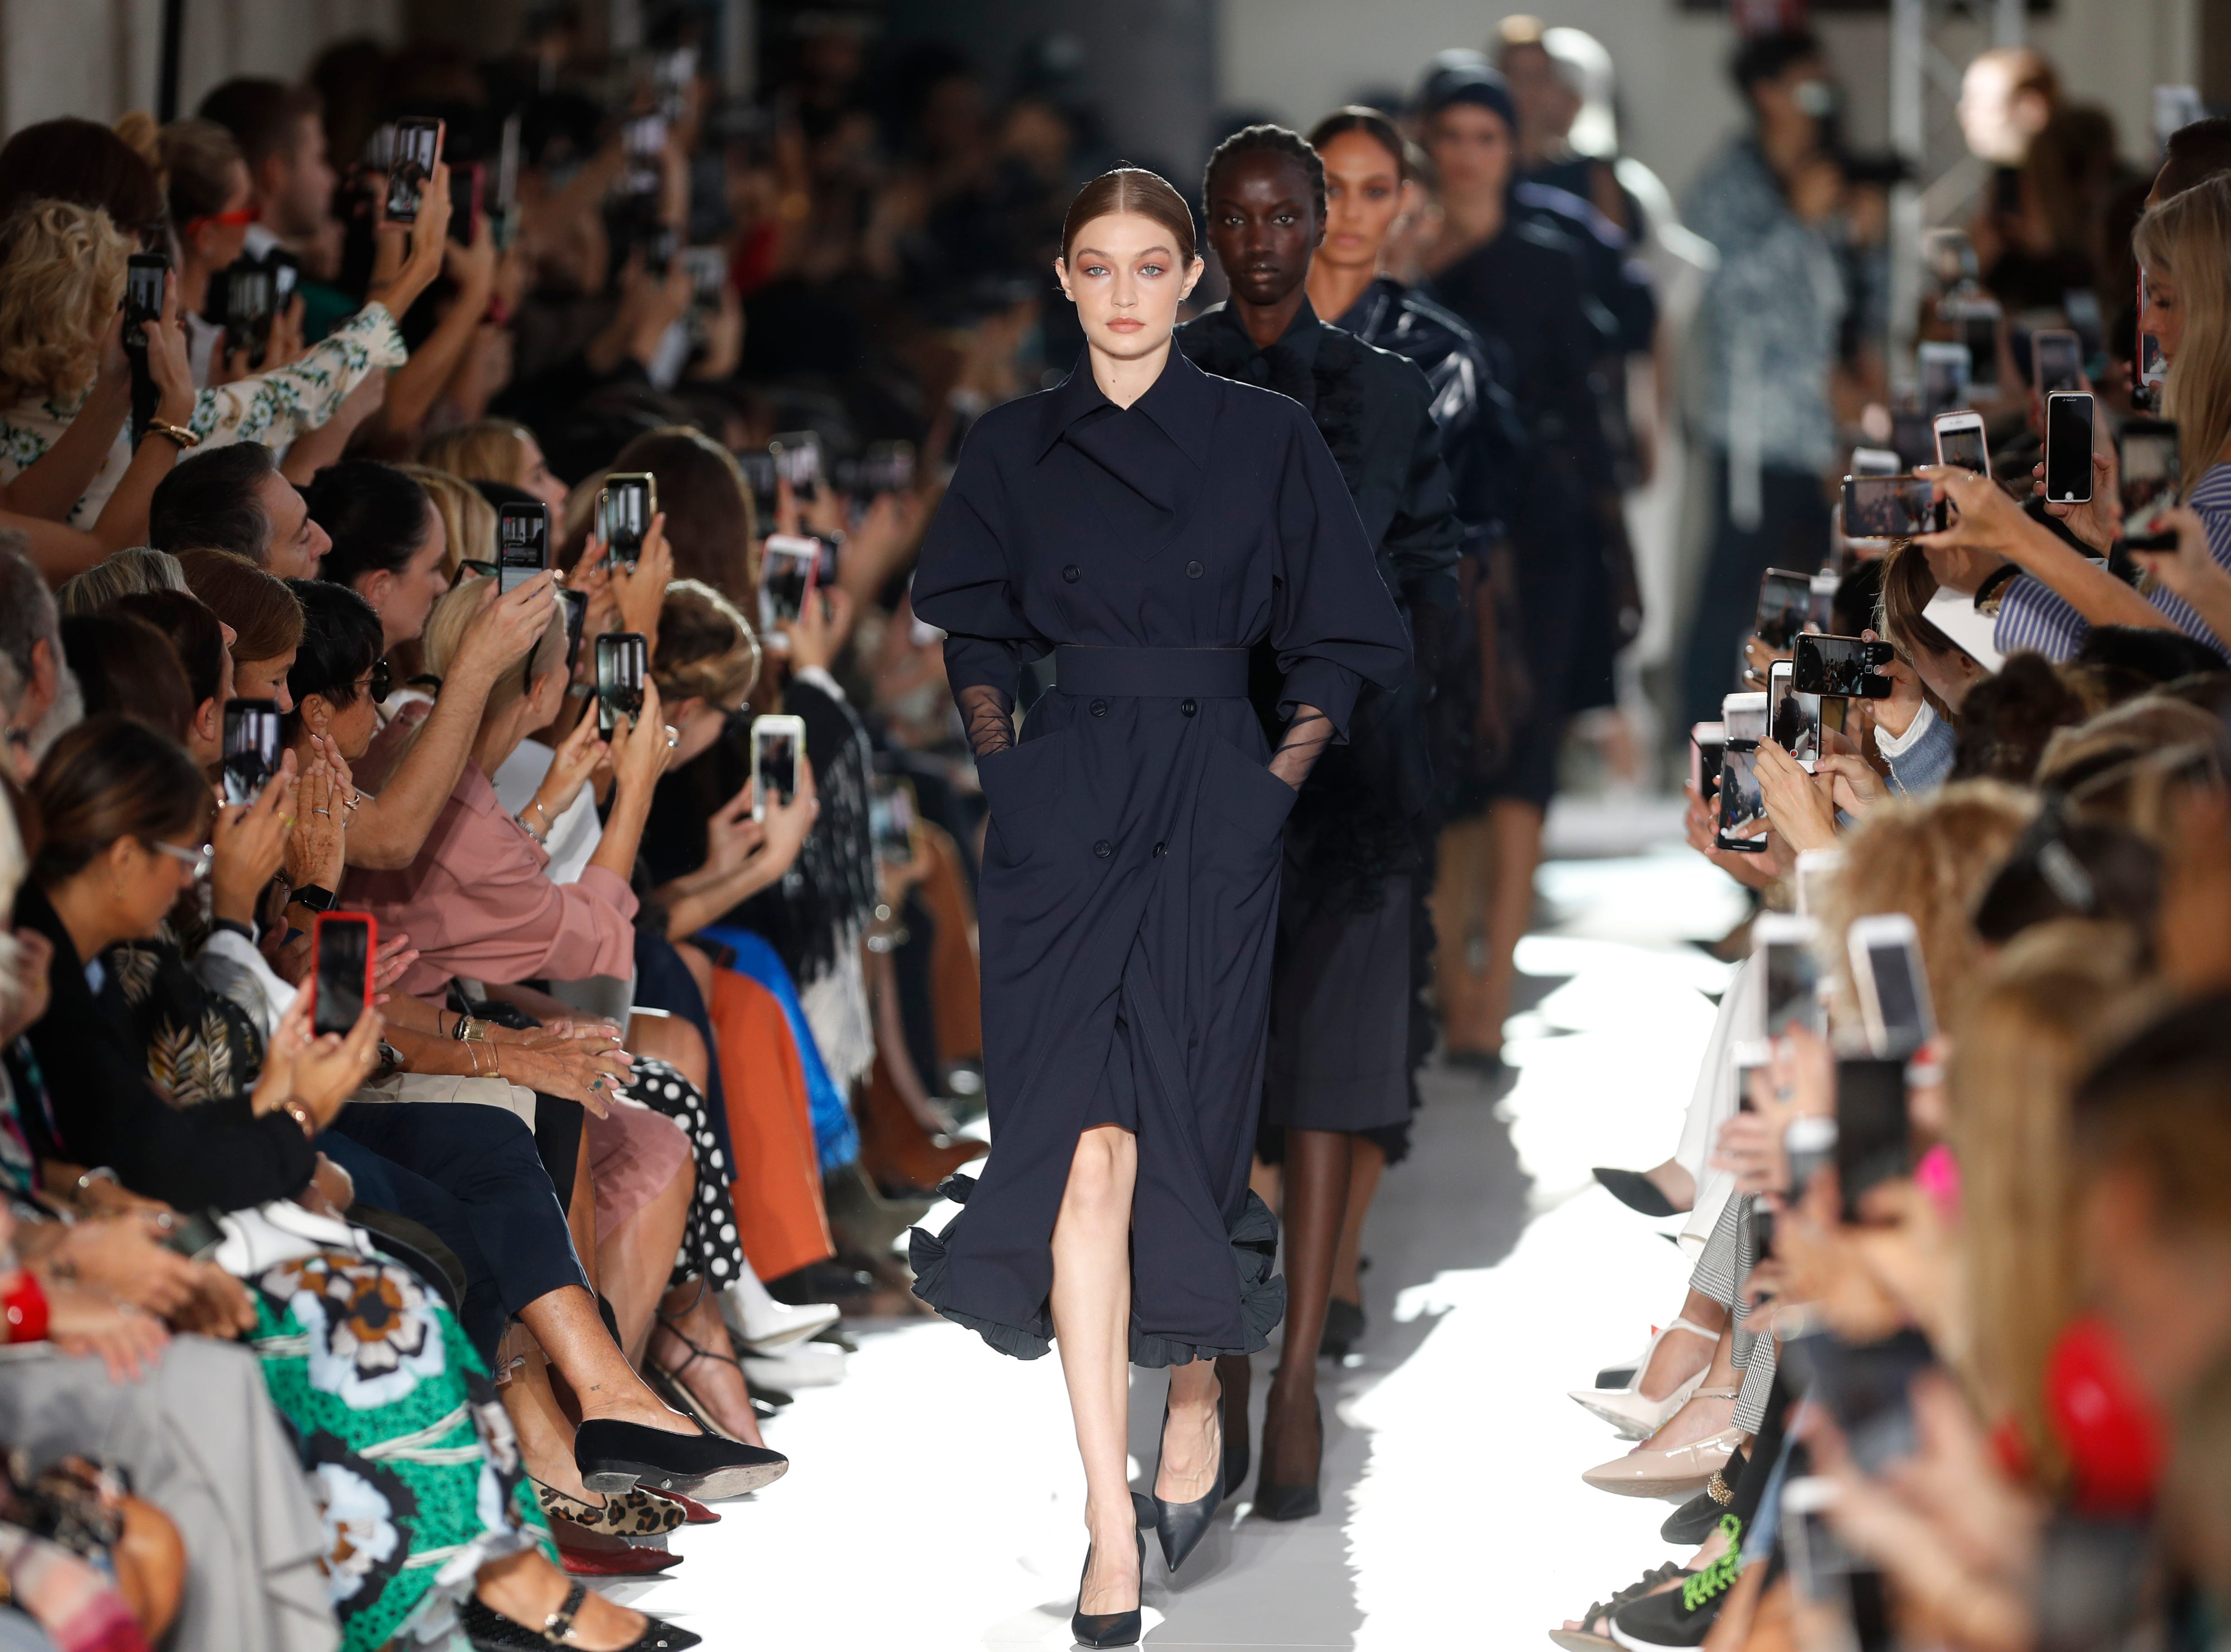 Model Gigi Hadid, front, and other models wear creations as part of the Max Mara women's 2019 spring-summer collection, unveiled during Fashion Week in Milan, Italy, Thursday, Sept. 20, 2018.